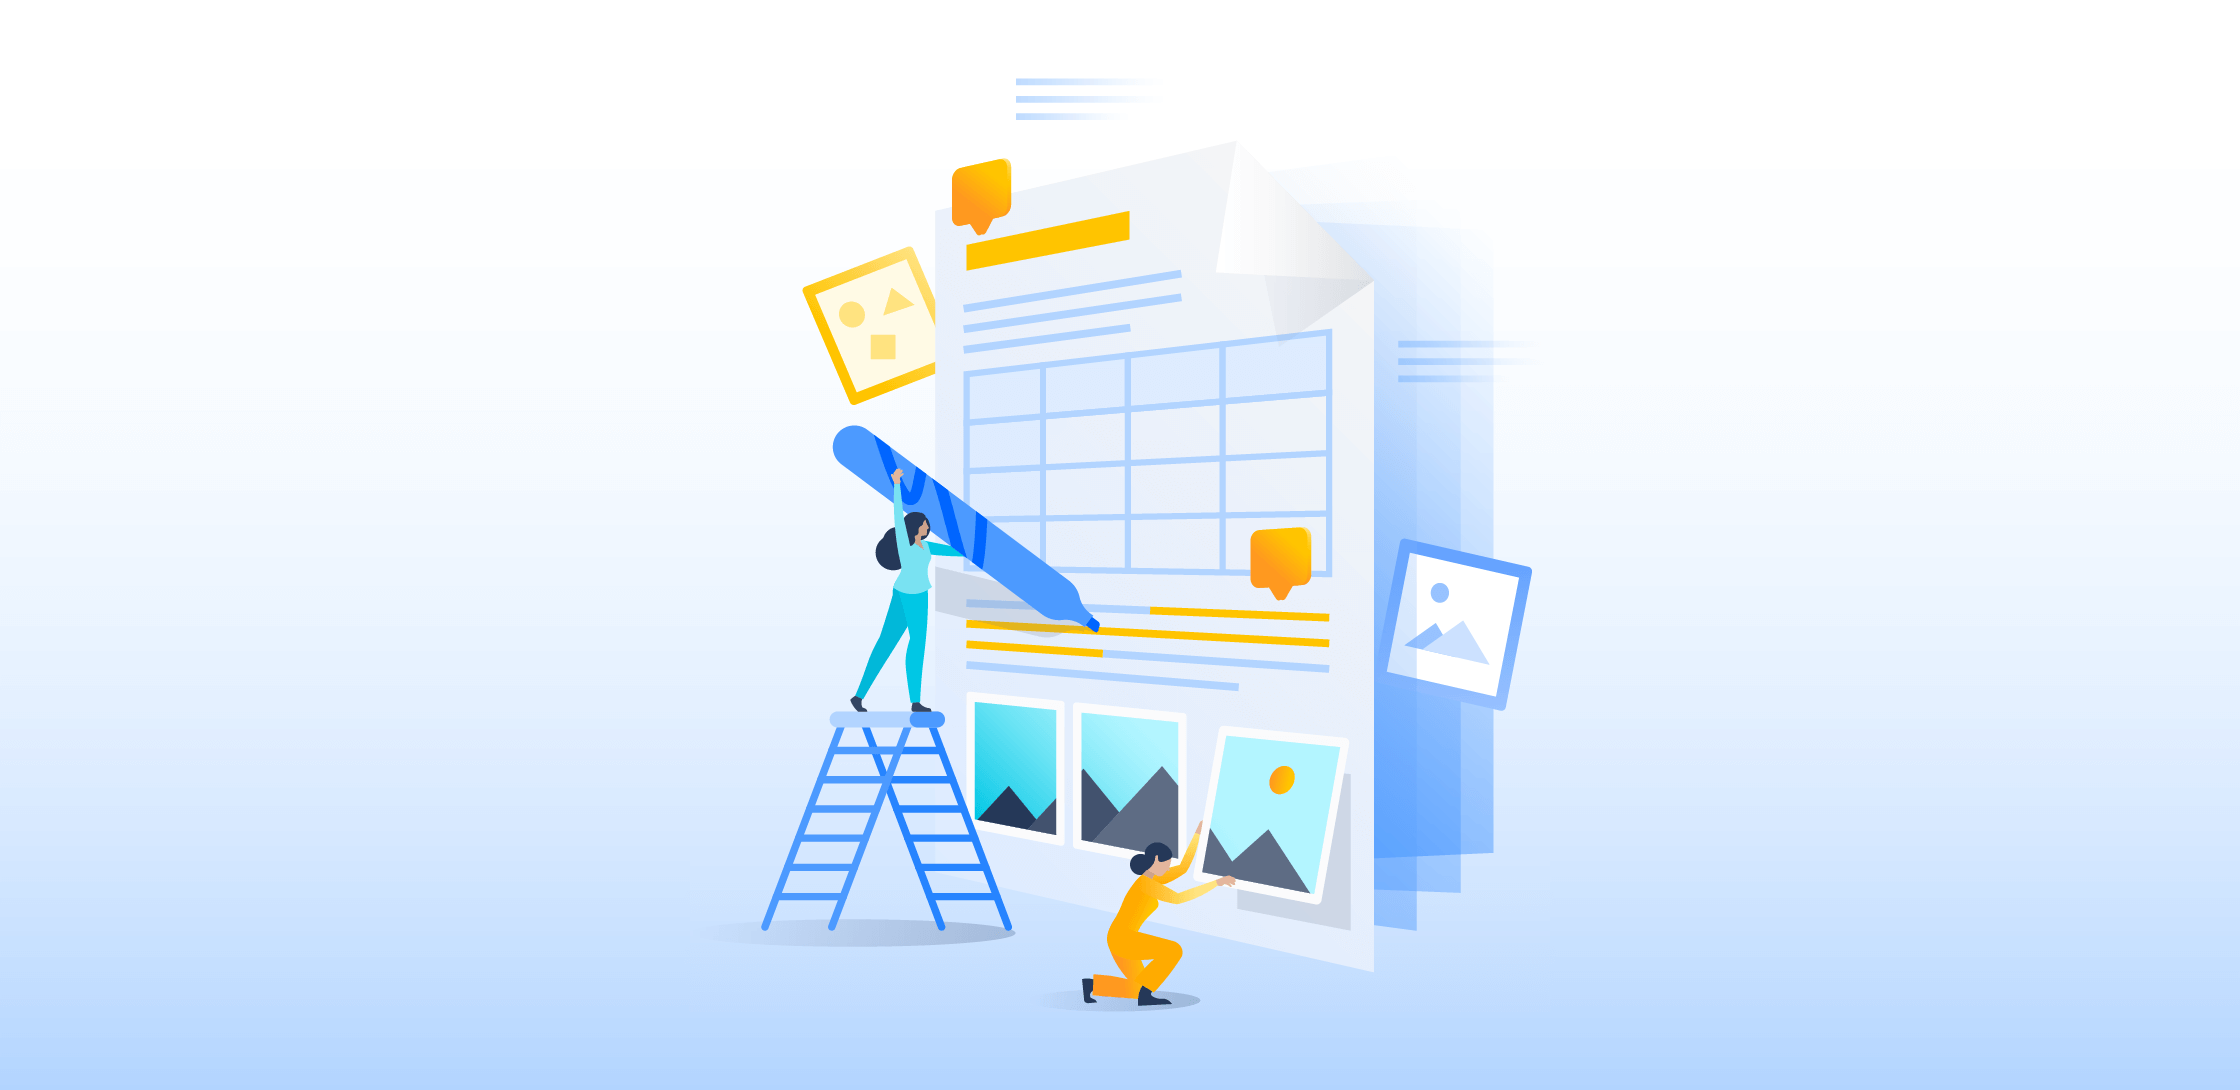 Best practices for working with tables in Confluence